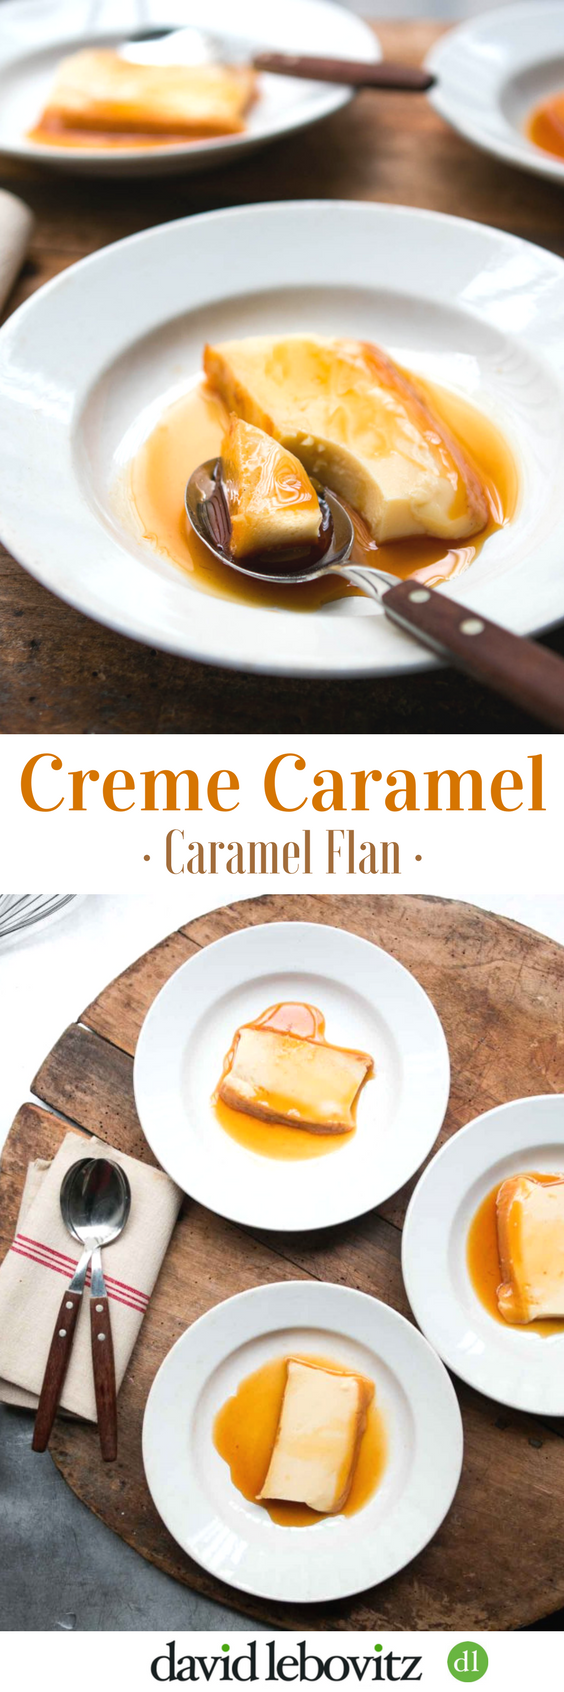 Caramel Flan: The classic French custard served with dark caramel surrounding a creamy, cool custard.